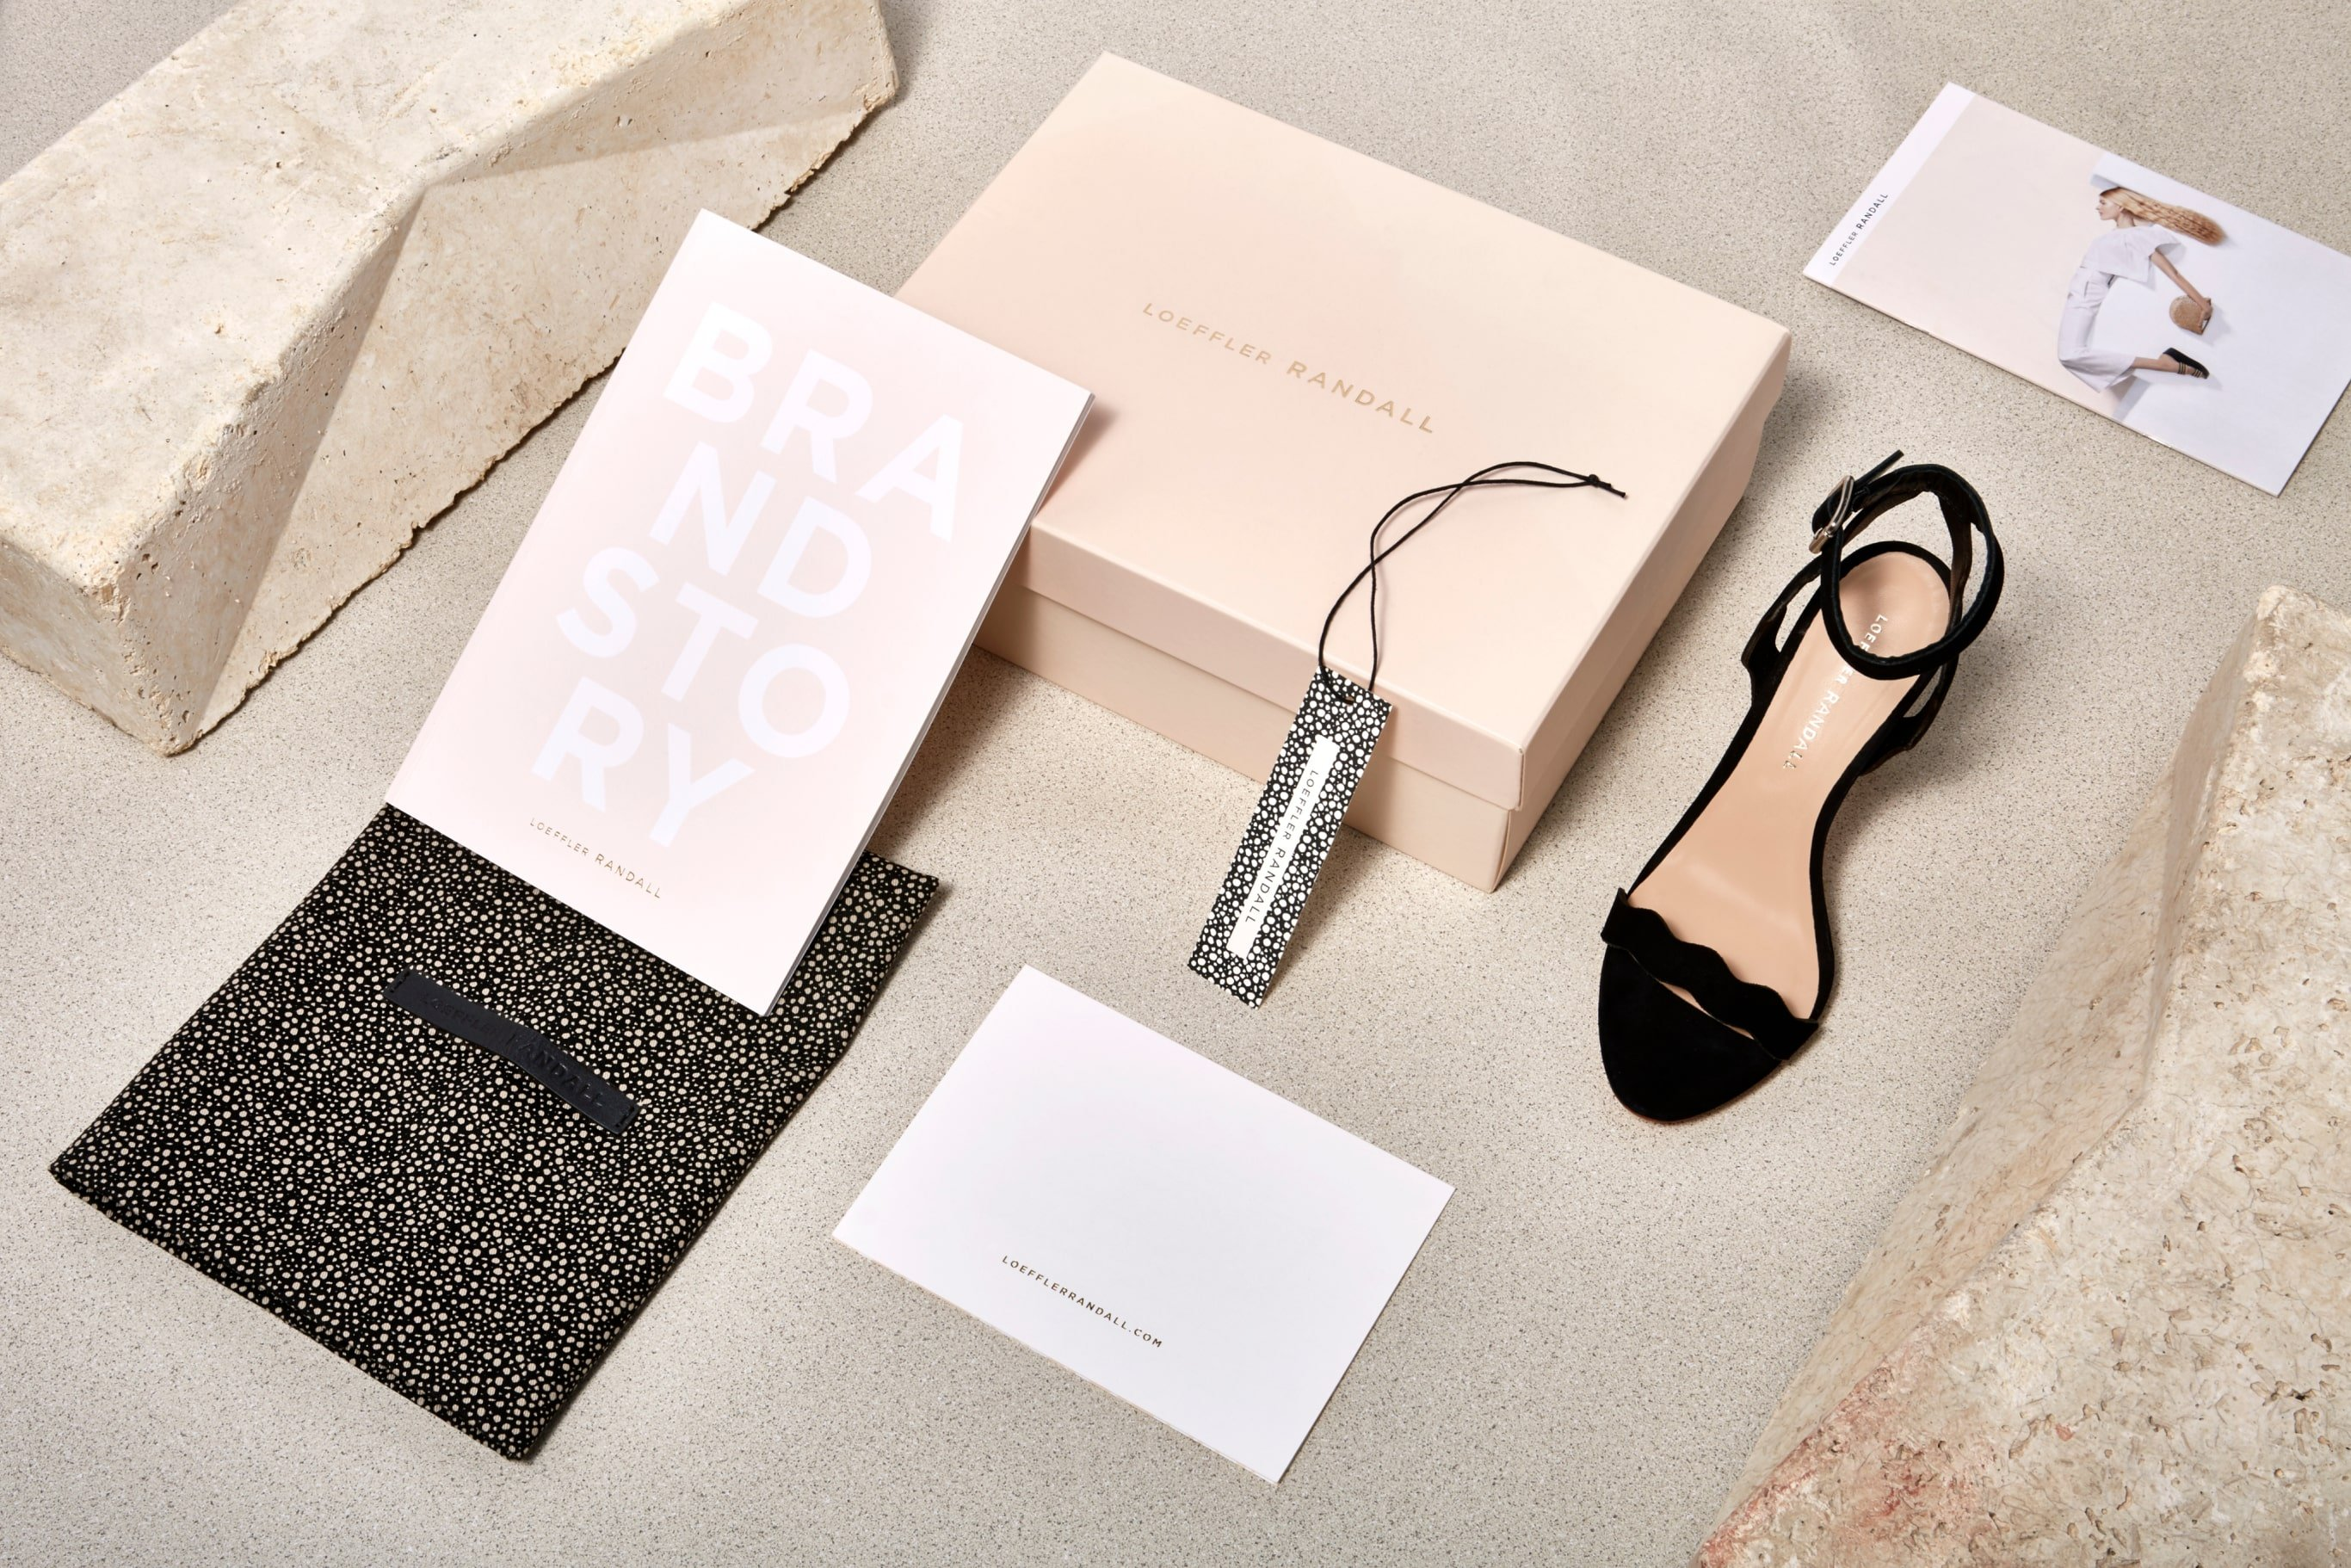 Loeffler Randall brand boxes. Featuring custom printed materials for interior and exterior packaging. Branding, packaging design and Art Direction by RoAndCo